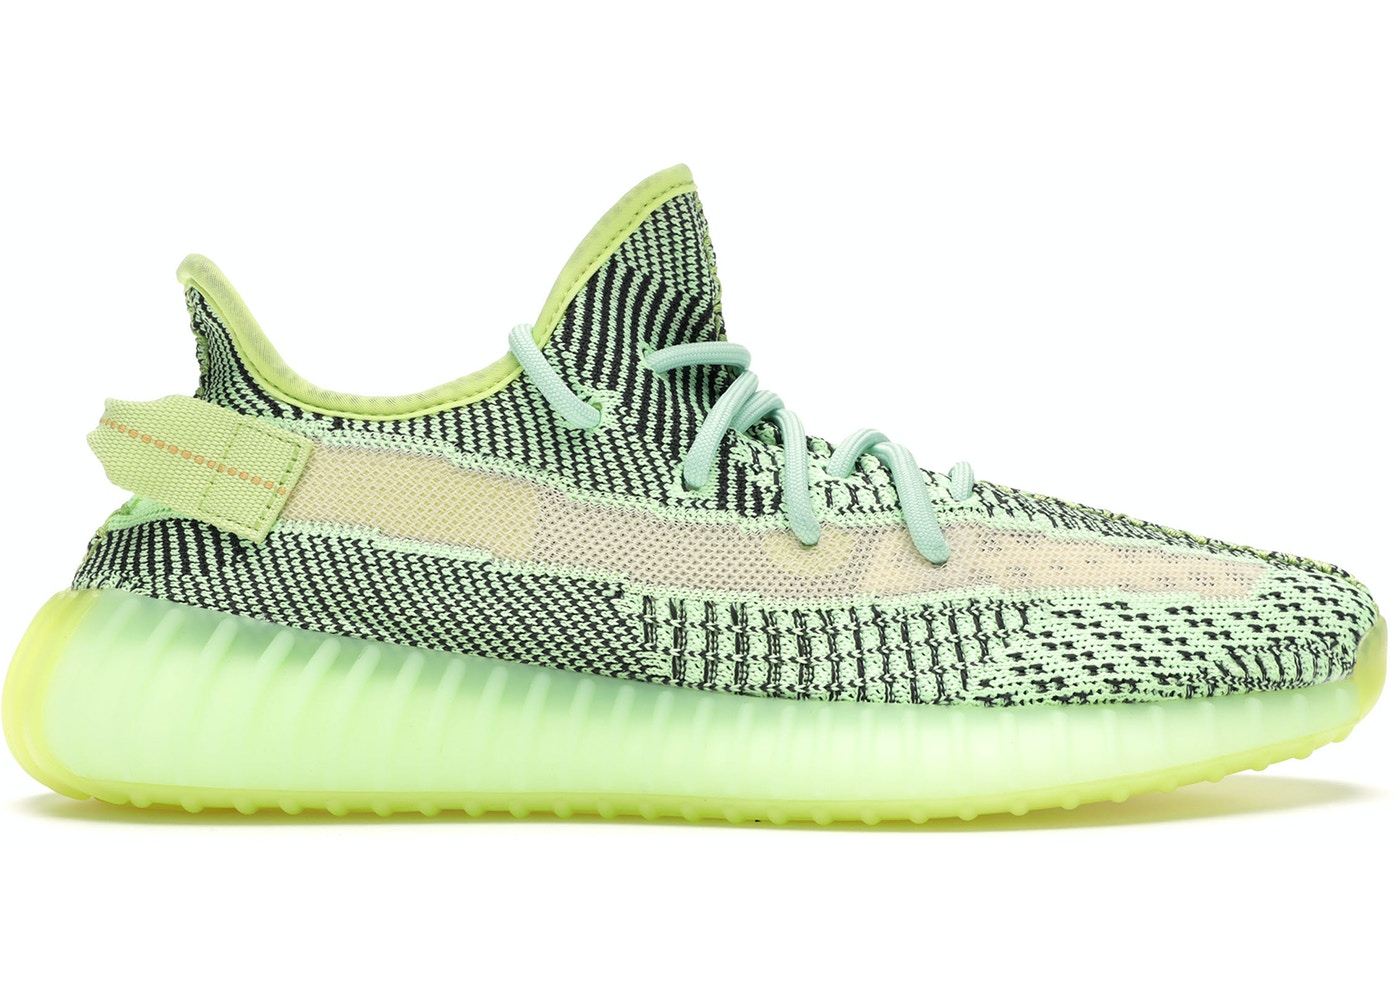 new york best deals on new high quality adidas Yeezy Boost 350 V2 Yeezreel (Non-Reflective) - FW5191